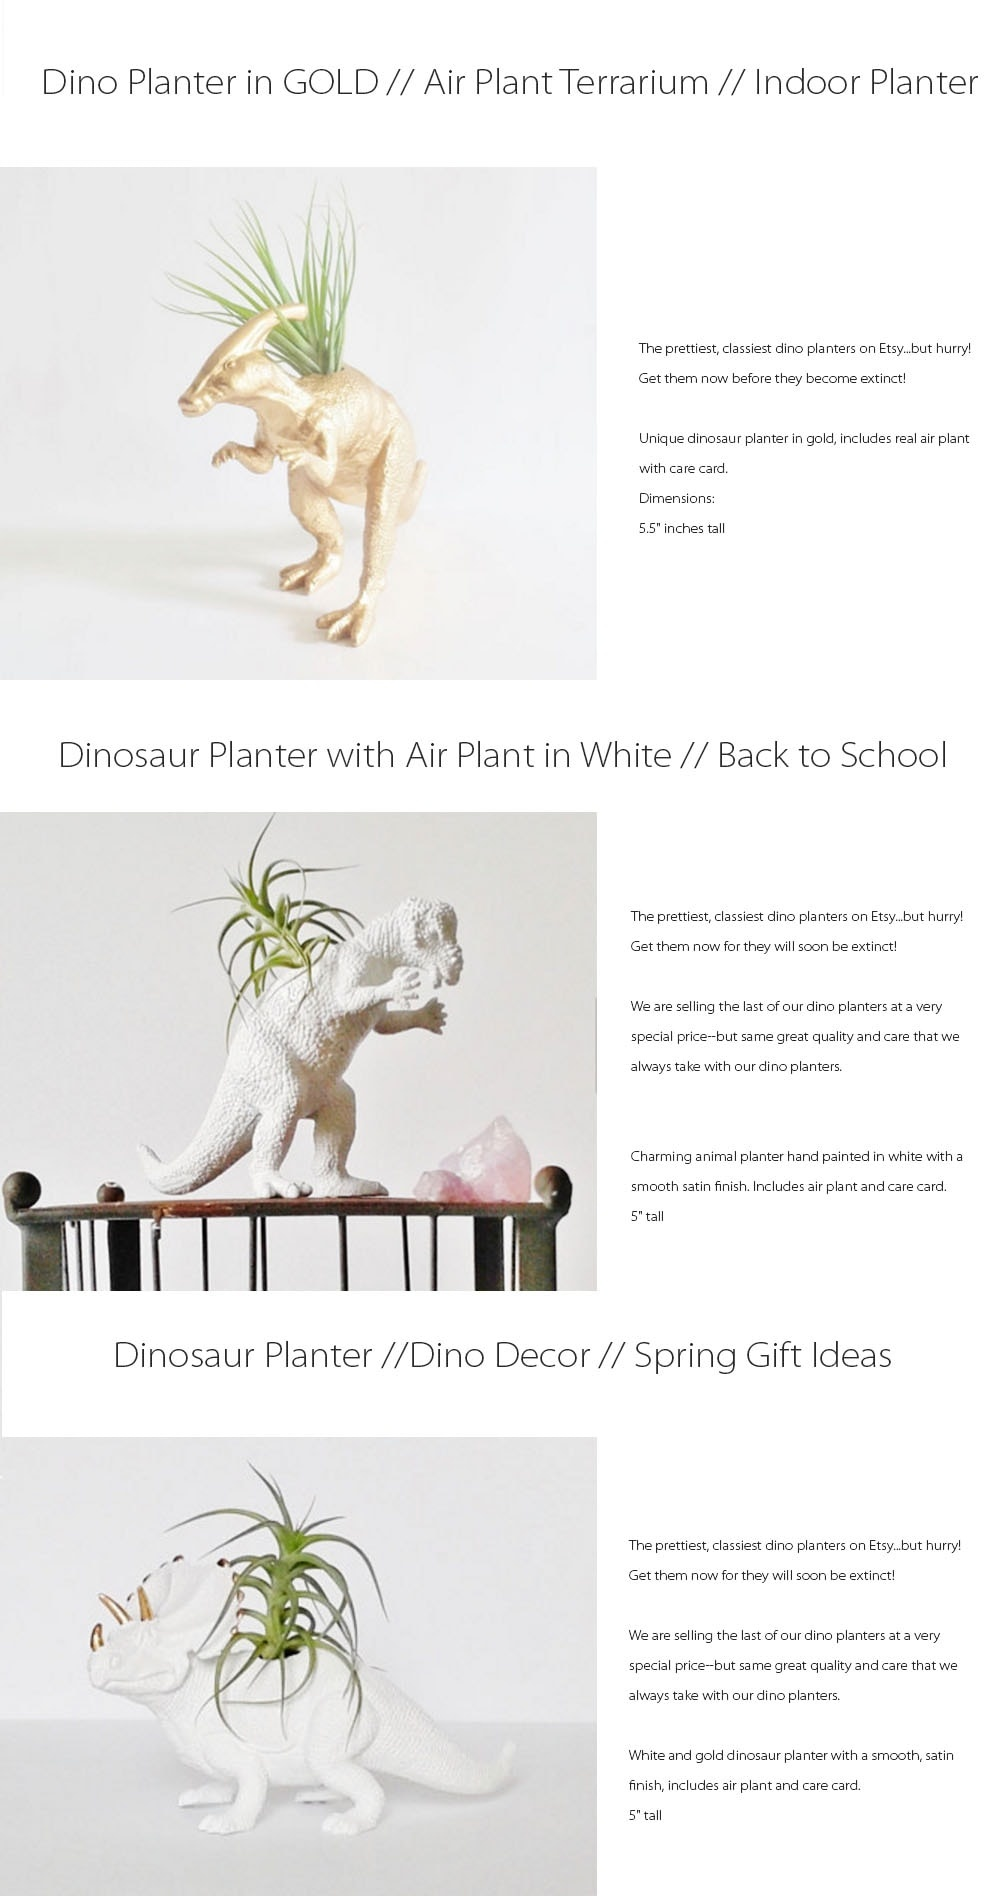 Dinosaur Planter And Air Plant Get Them Now Before They Become Extinct